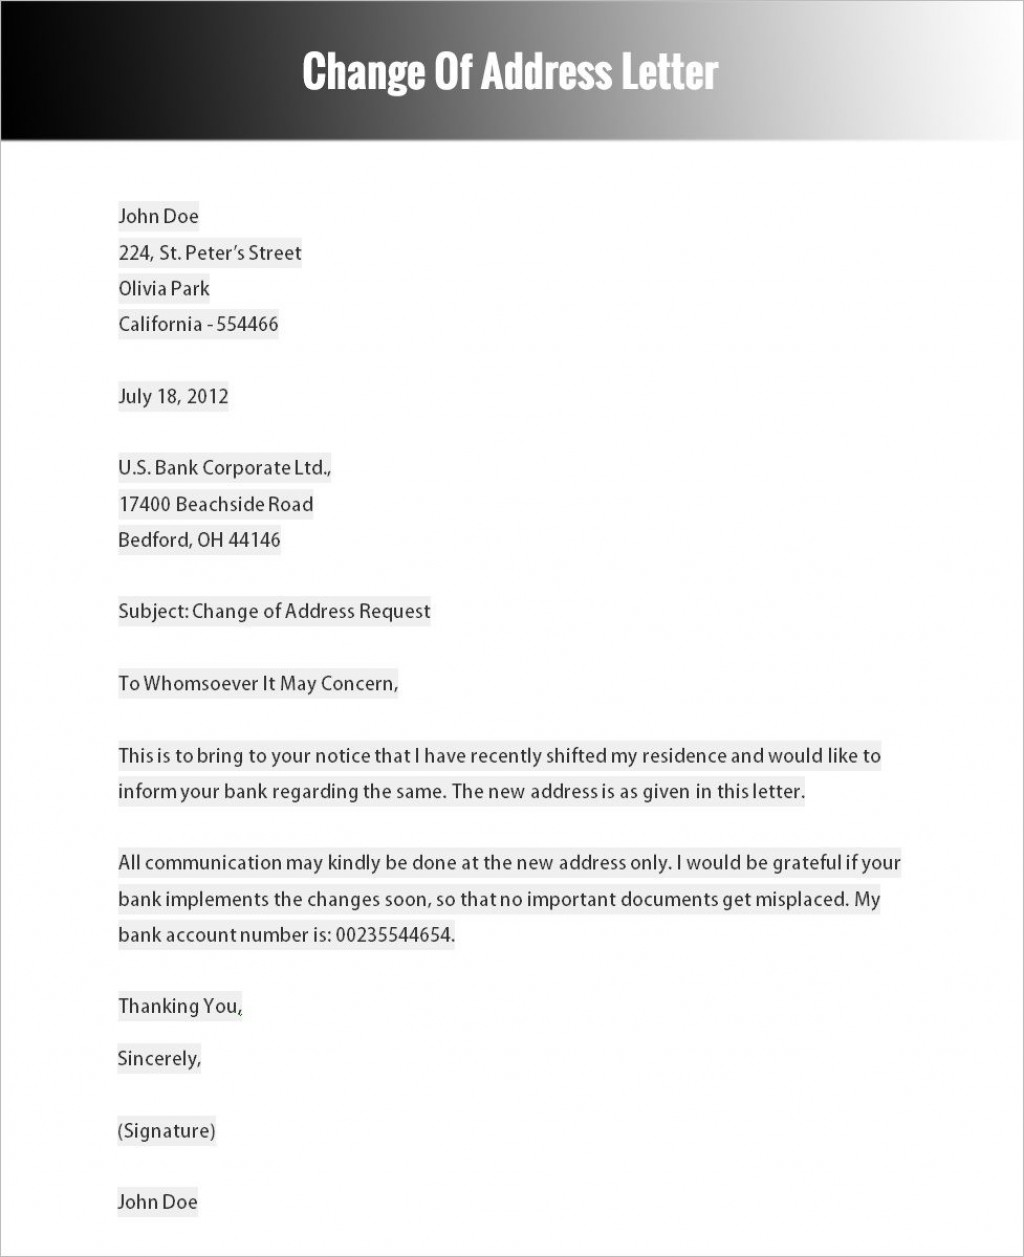 003 Outstanding Change Of Addres Letter Template Concept  Templates For Busines FreeLarge